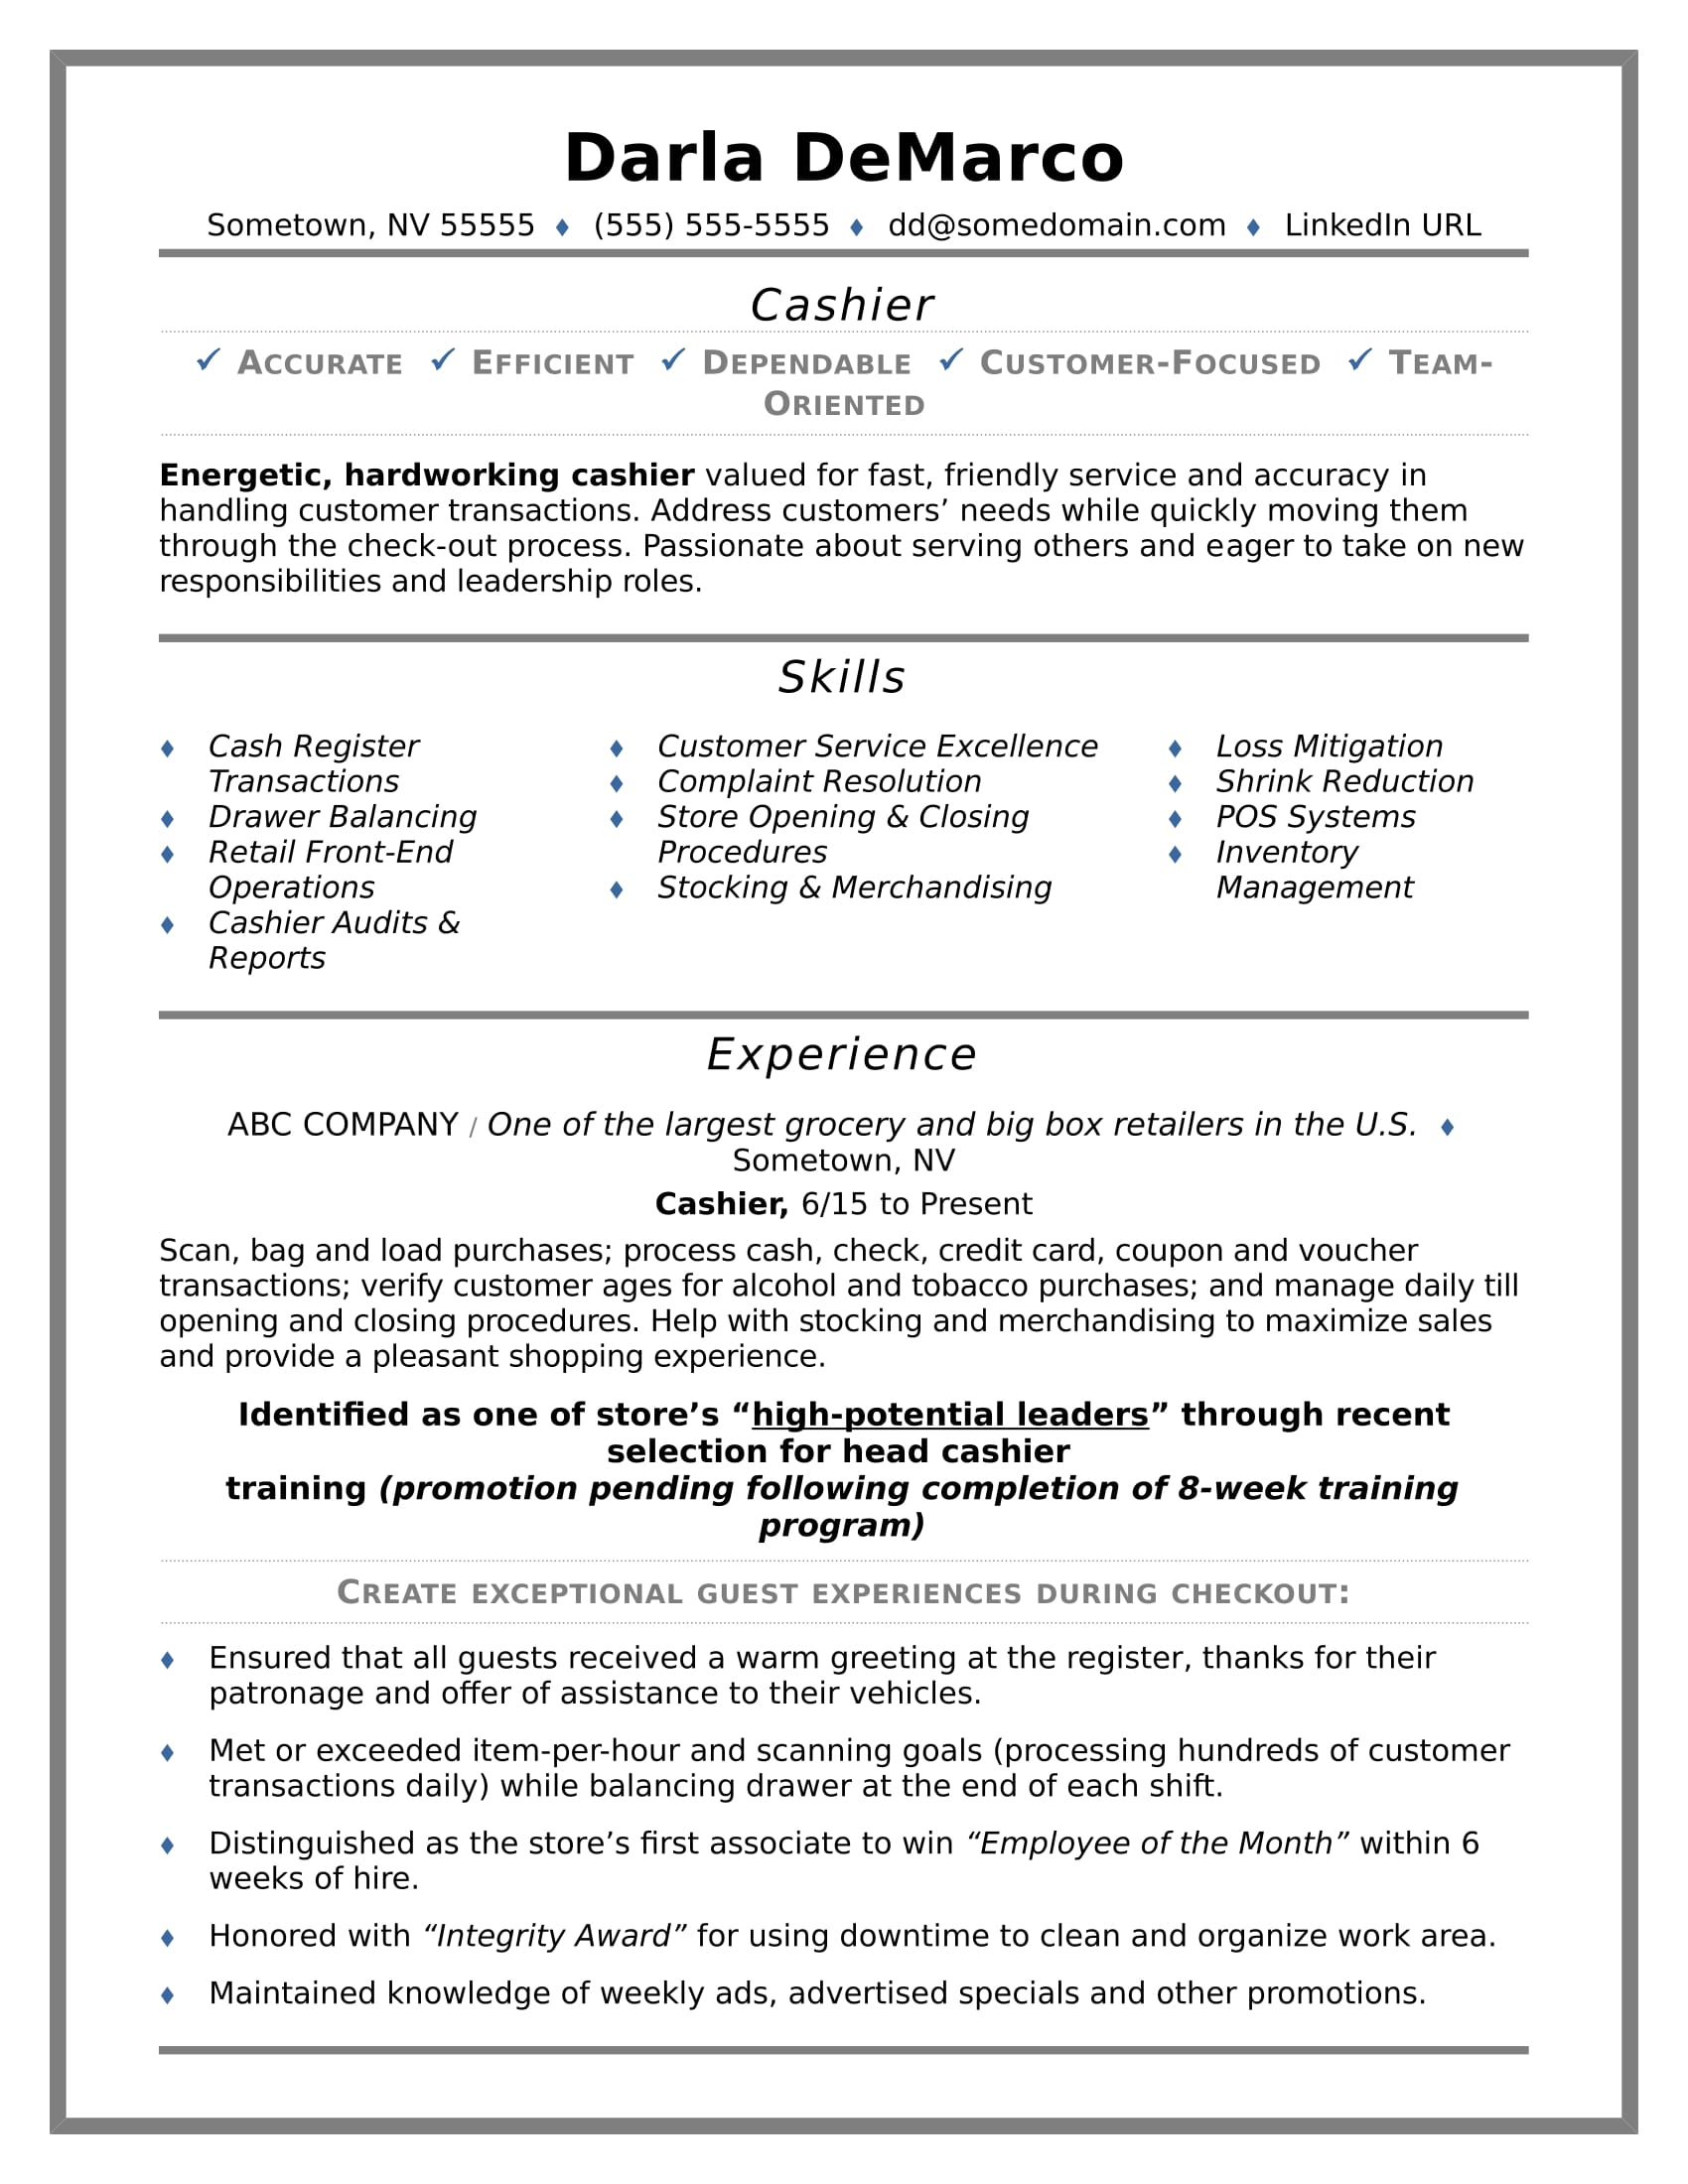 cashier resume sample - Customer Service Job Resume